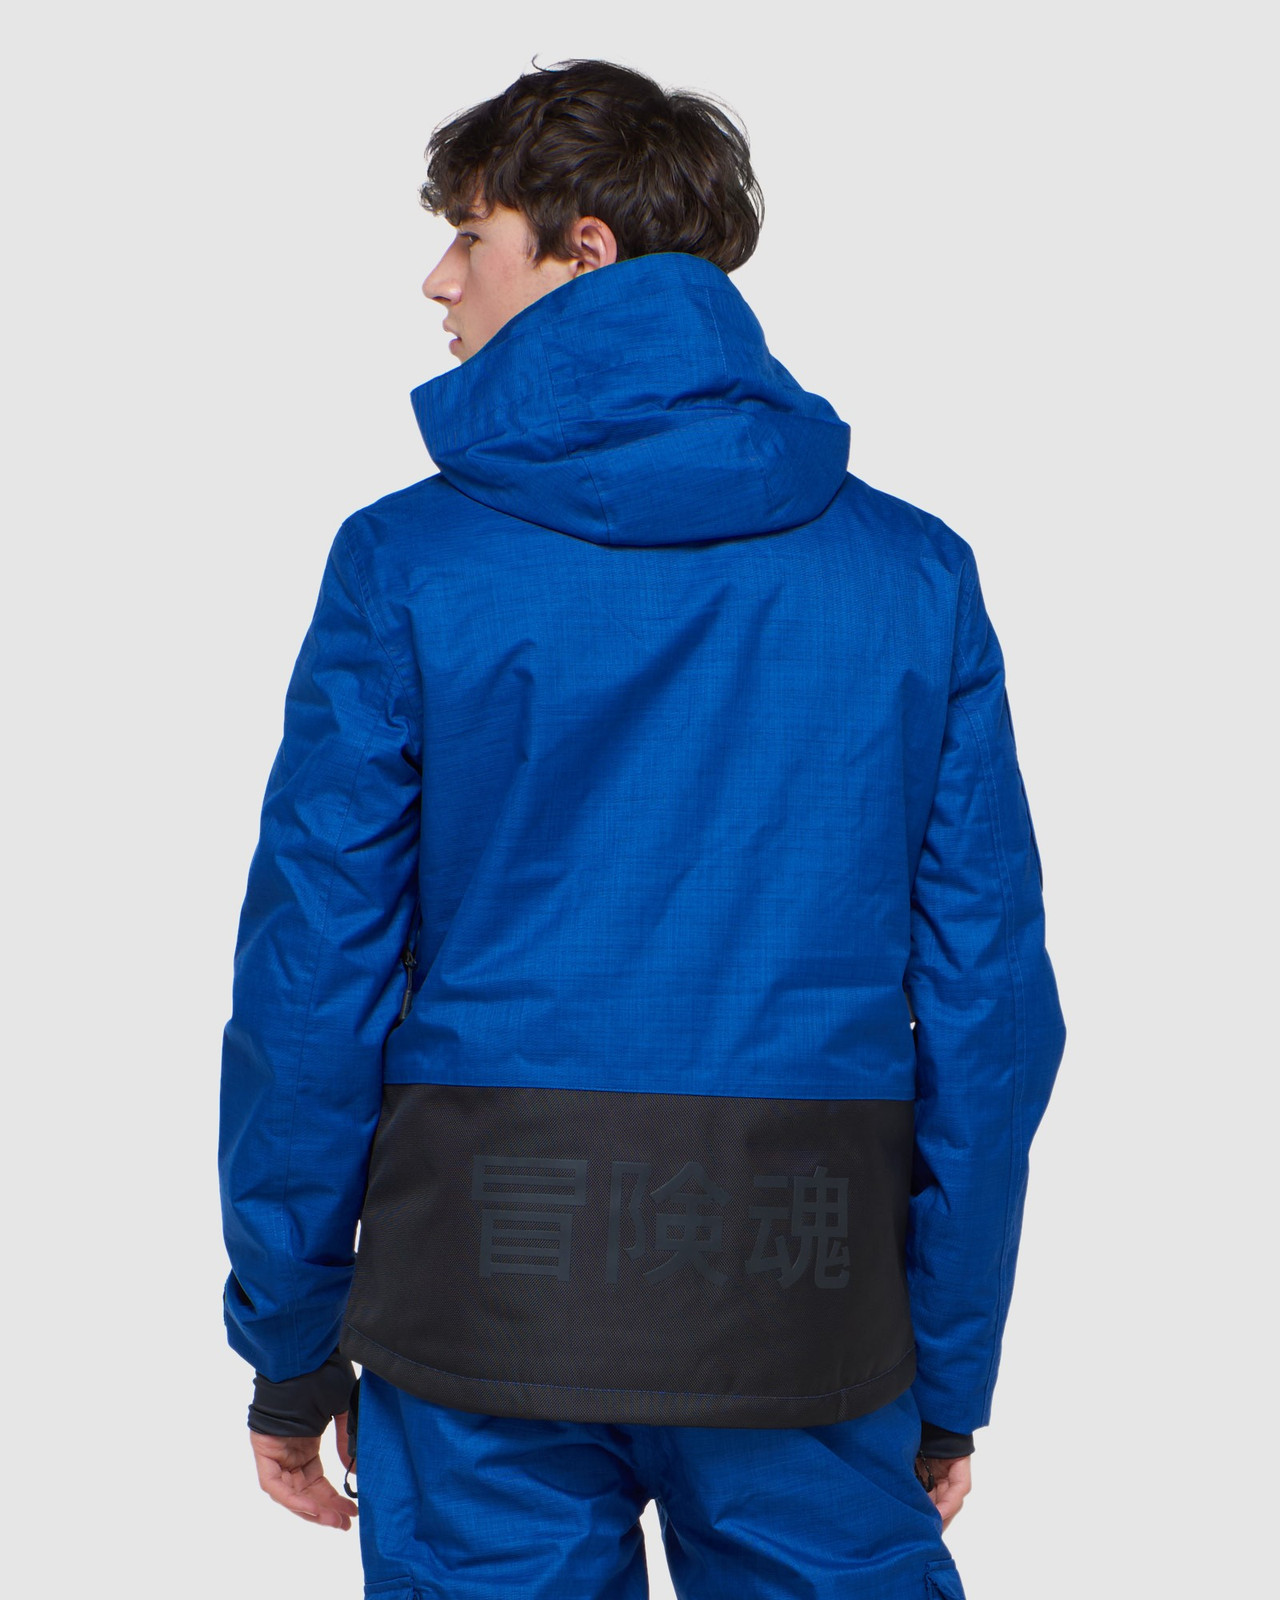 Superdry Mens ULTIMATE MOUNTAIN RESCUE JKT Blue Green Snow Jackets 3